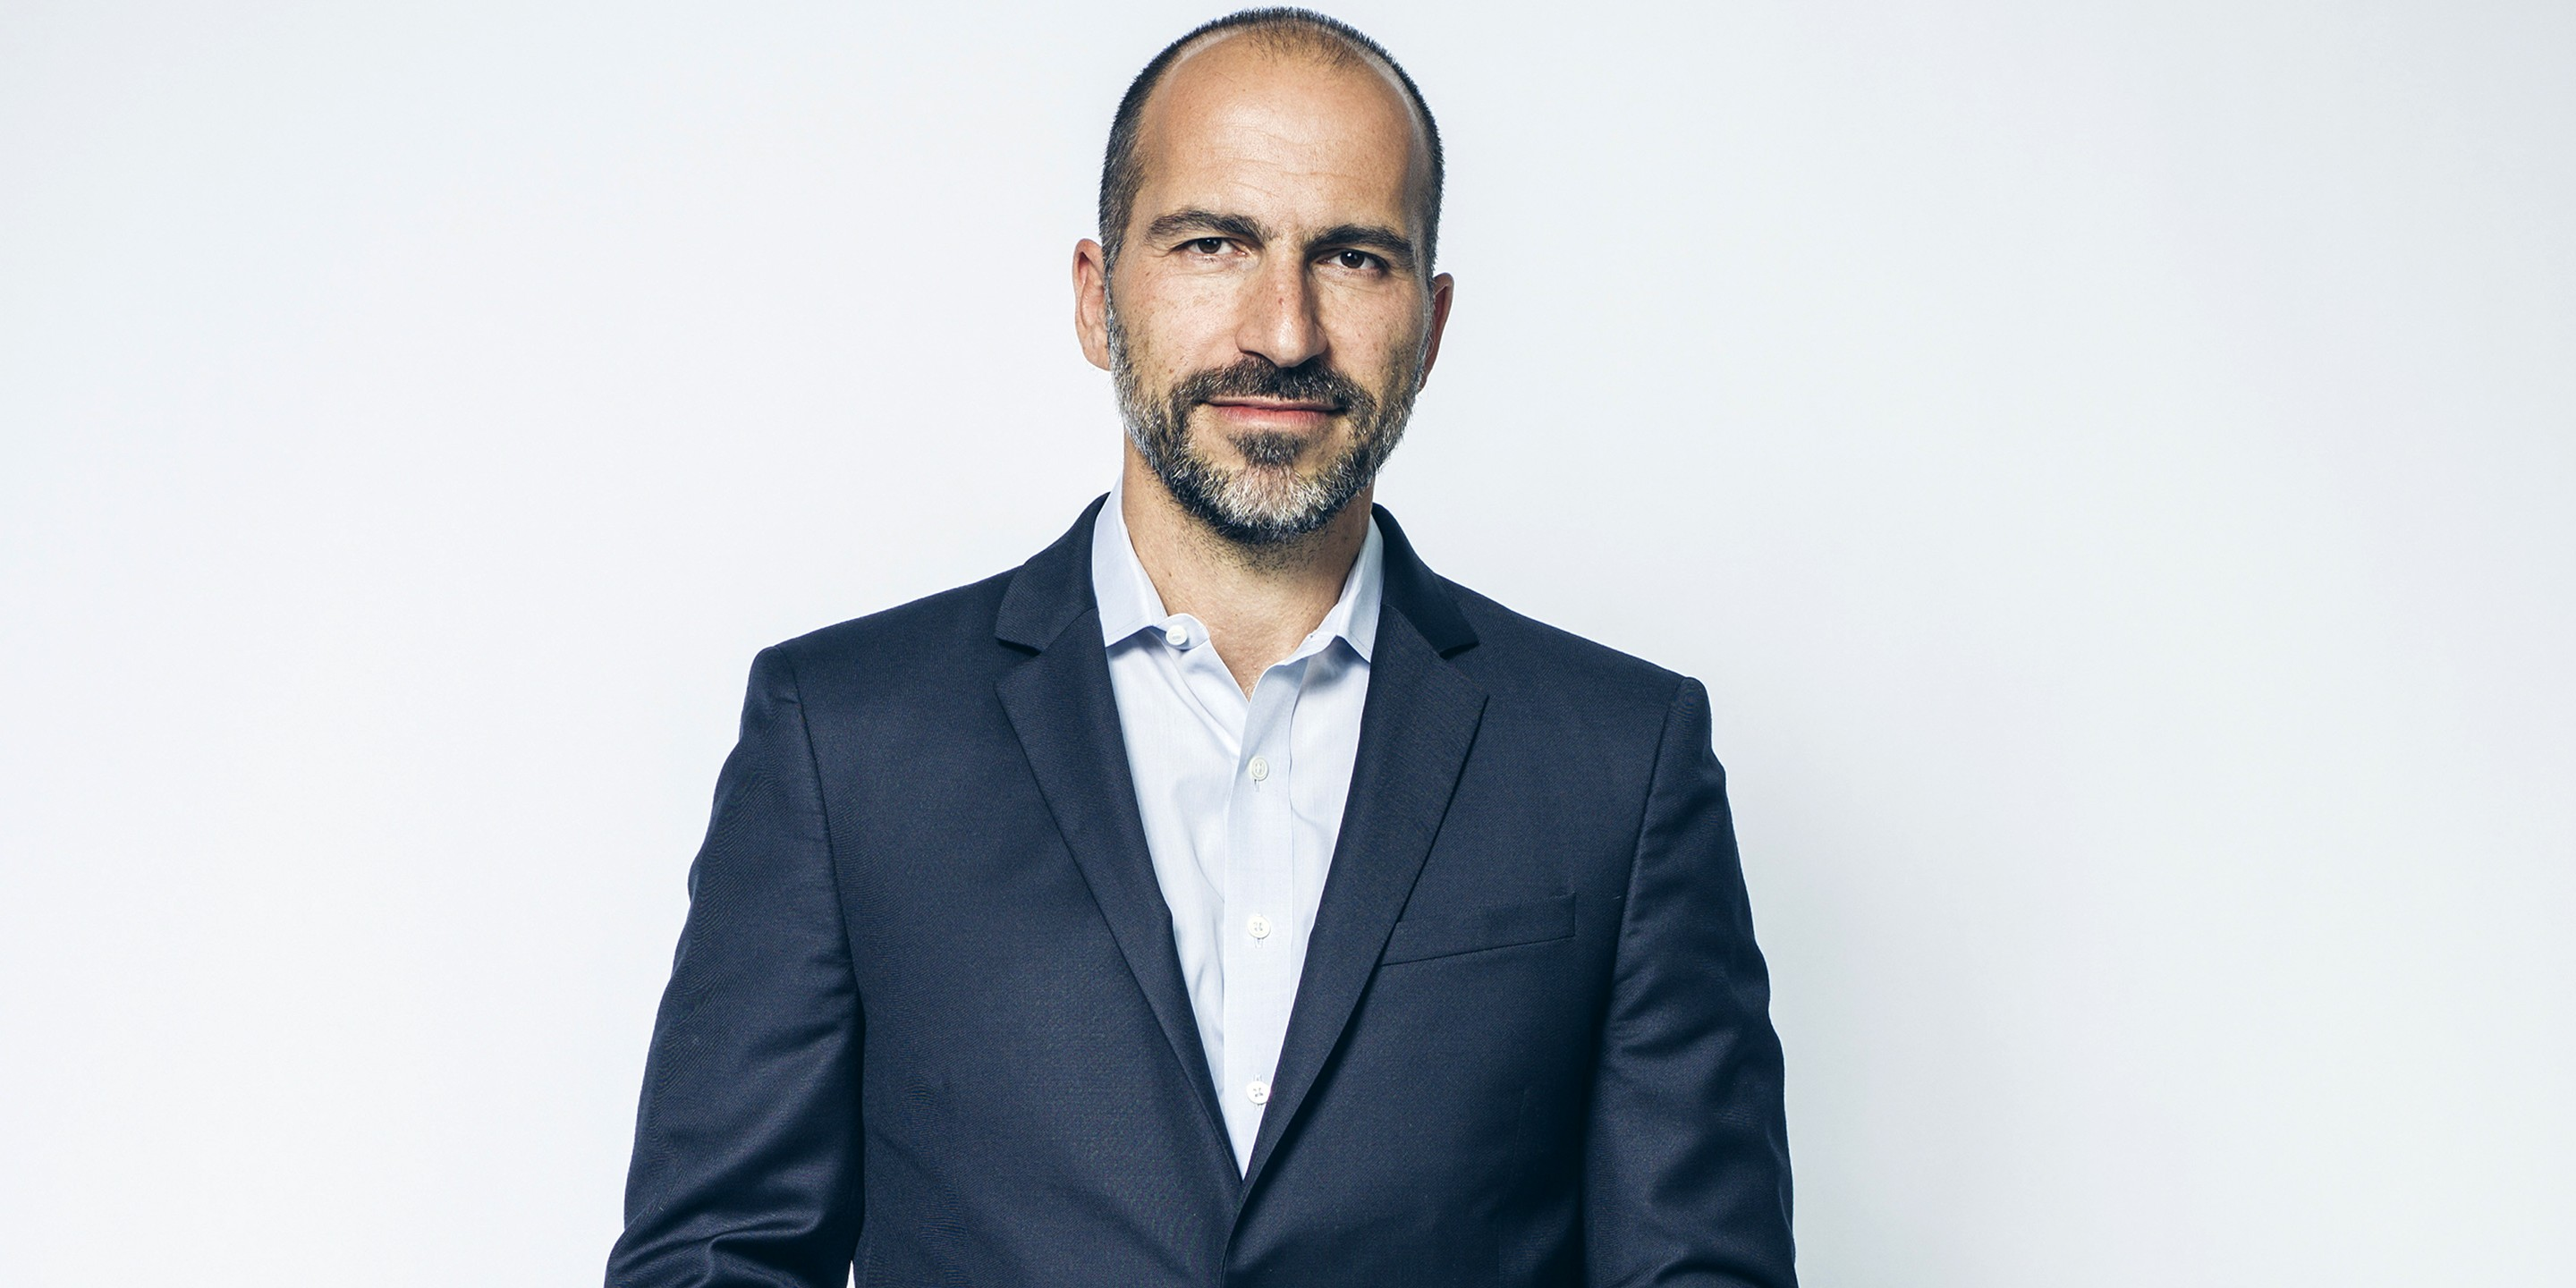 Uber schaft de posten van Chief Operating Officer en Chief Marketing Officer af